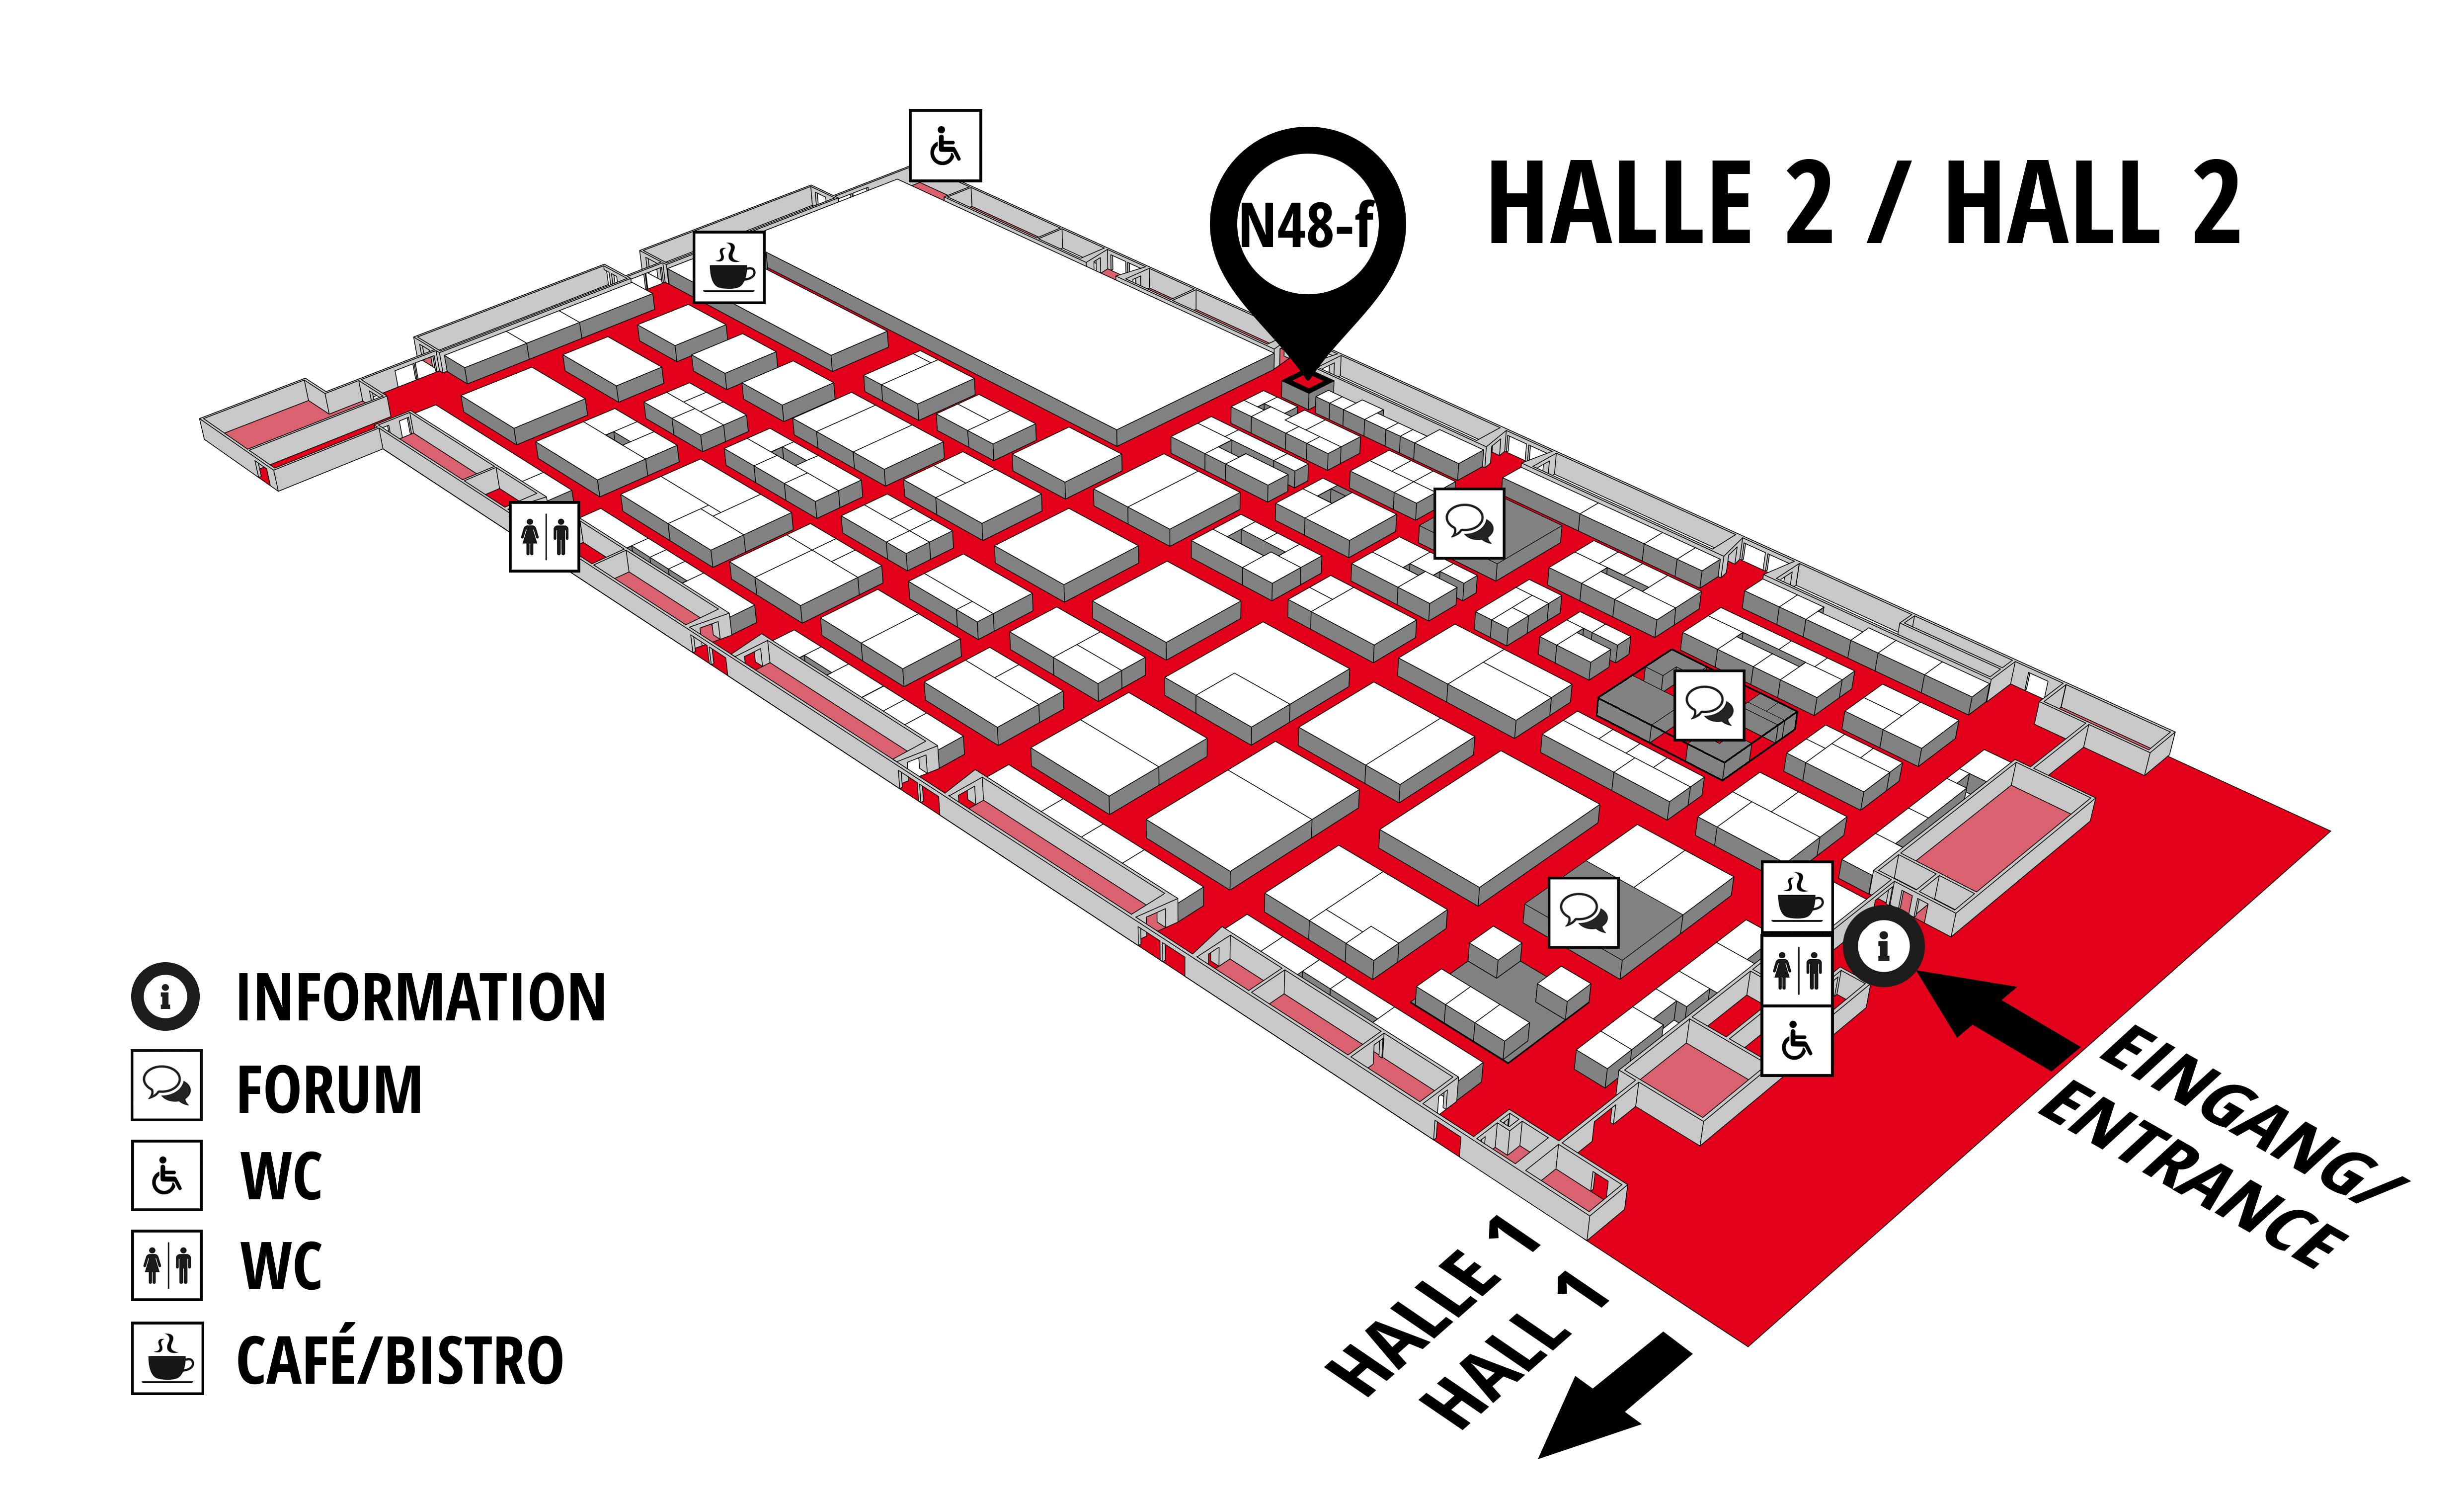 REHAB - Rehabilitation | Therapy | Care | Inclusion hall map (Hall 2): stand N48-f